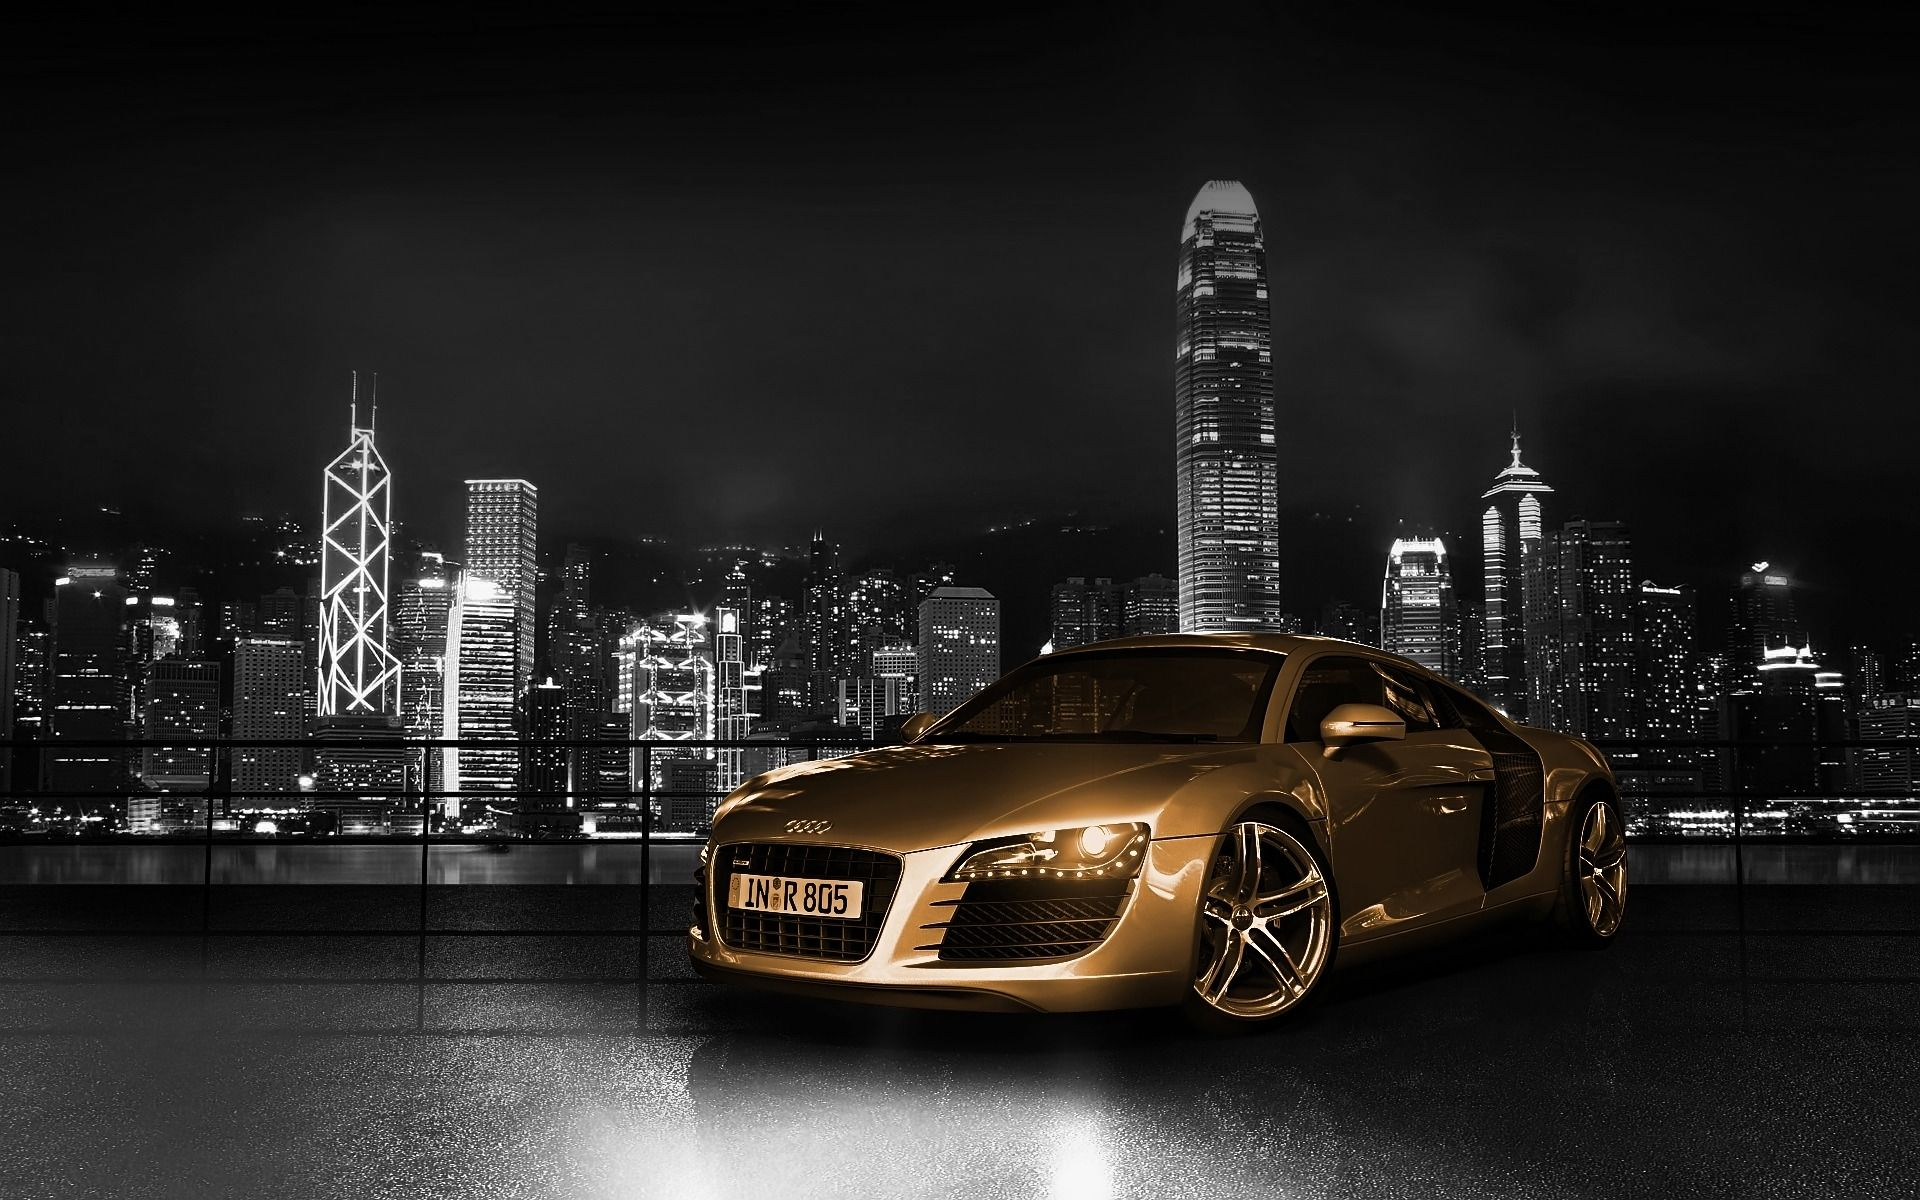 city night and golden car http://www.wallpaperback/city/city